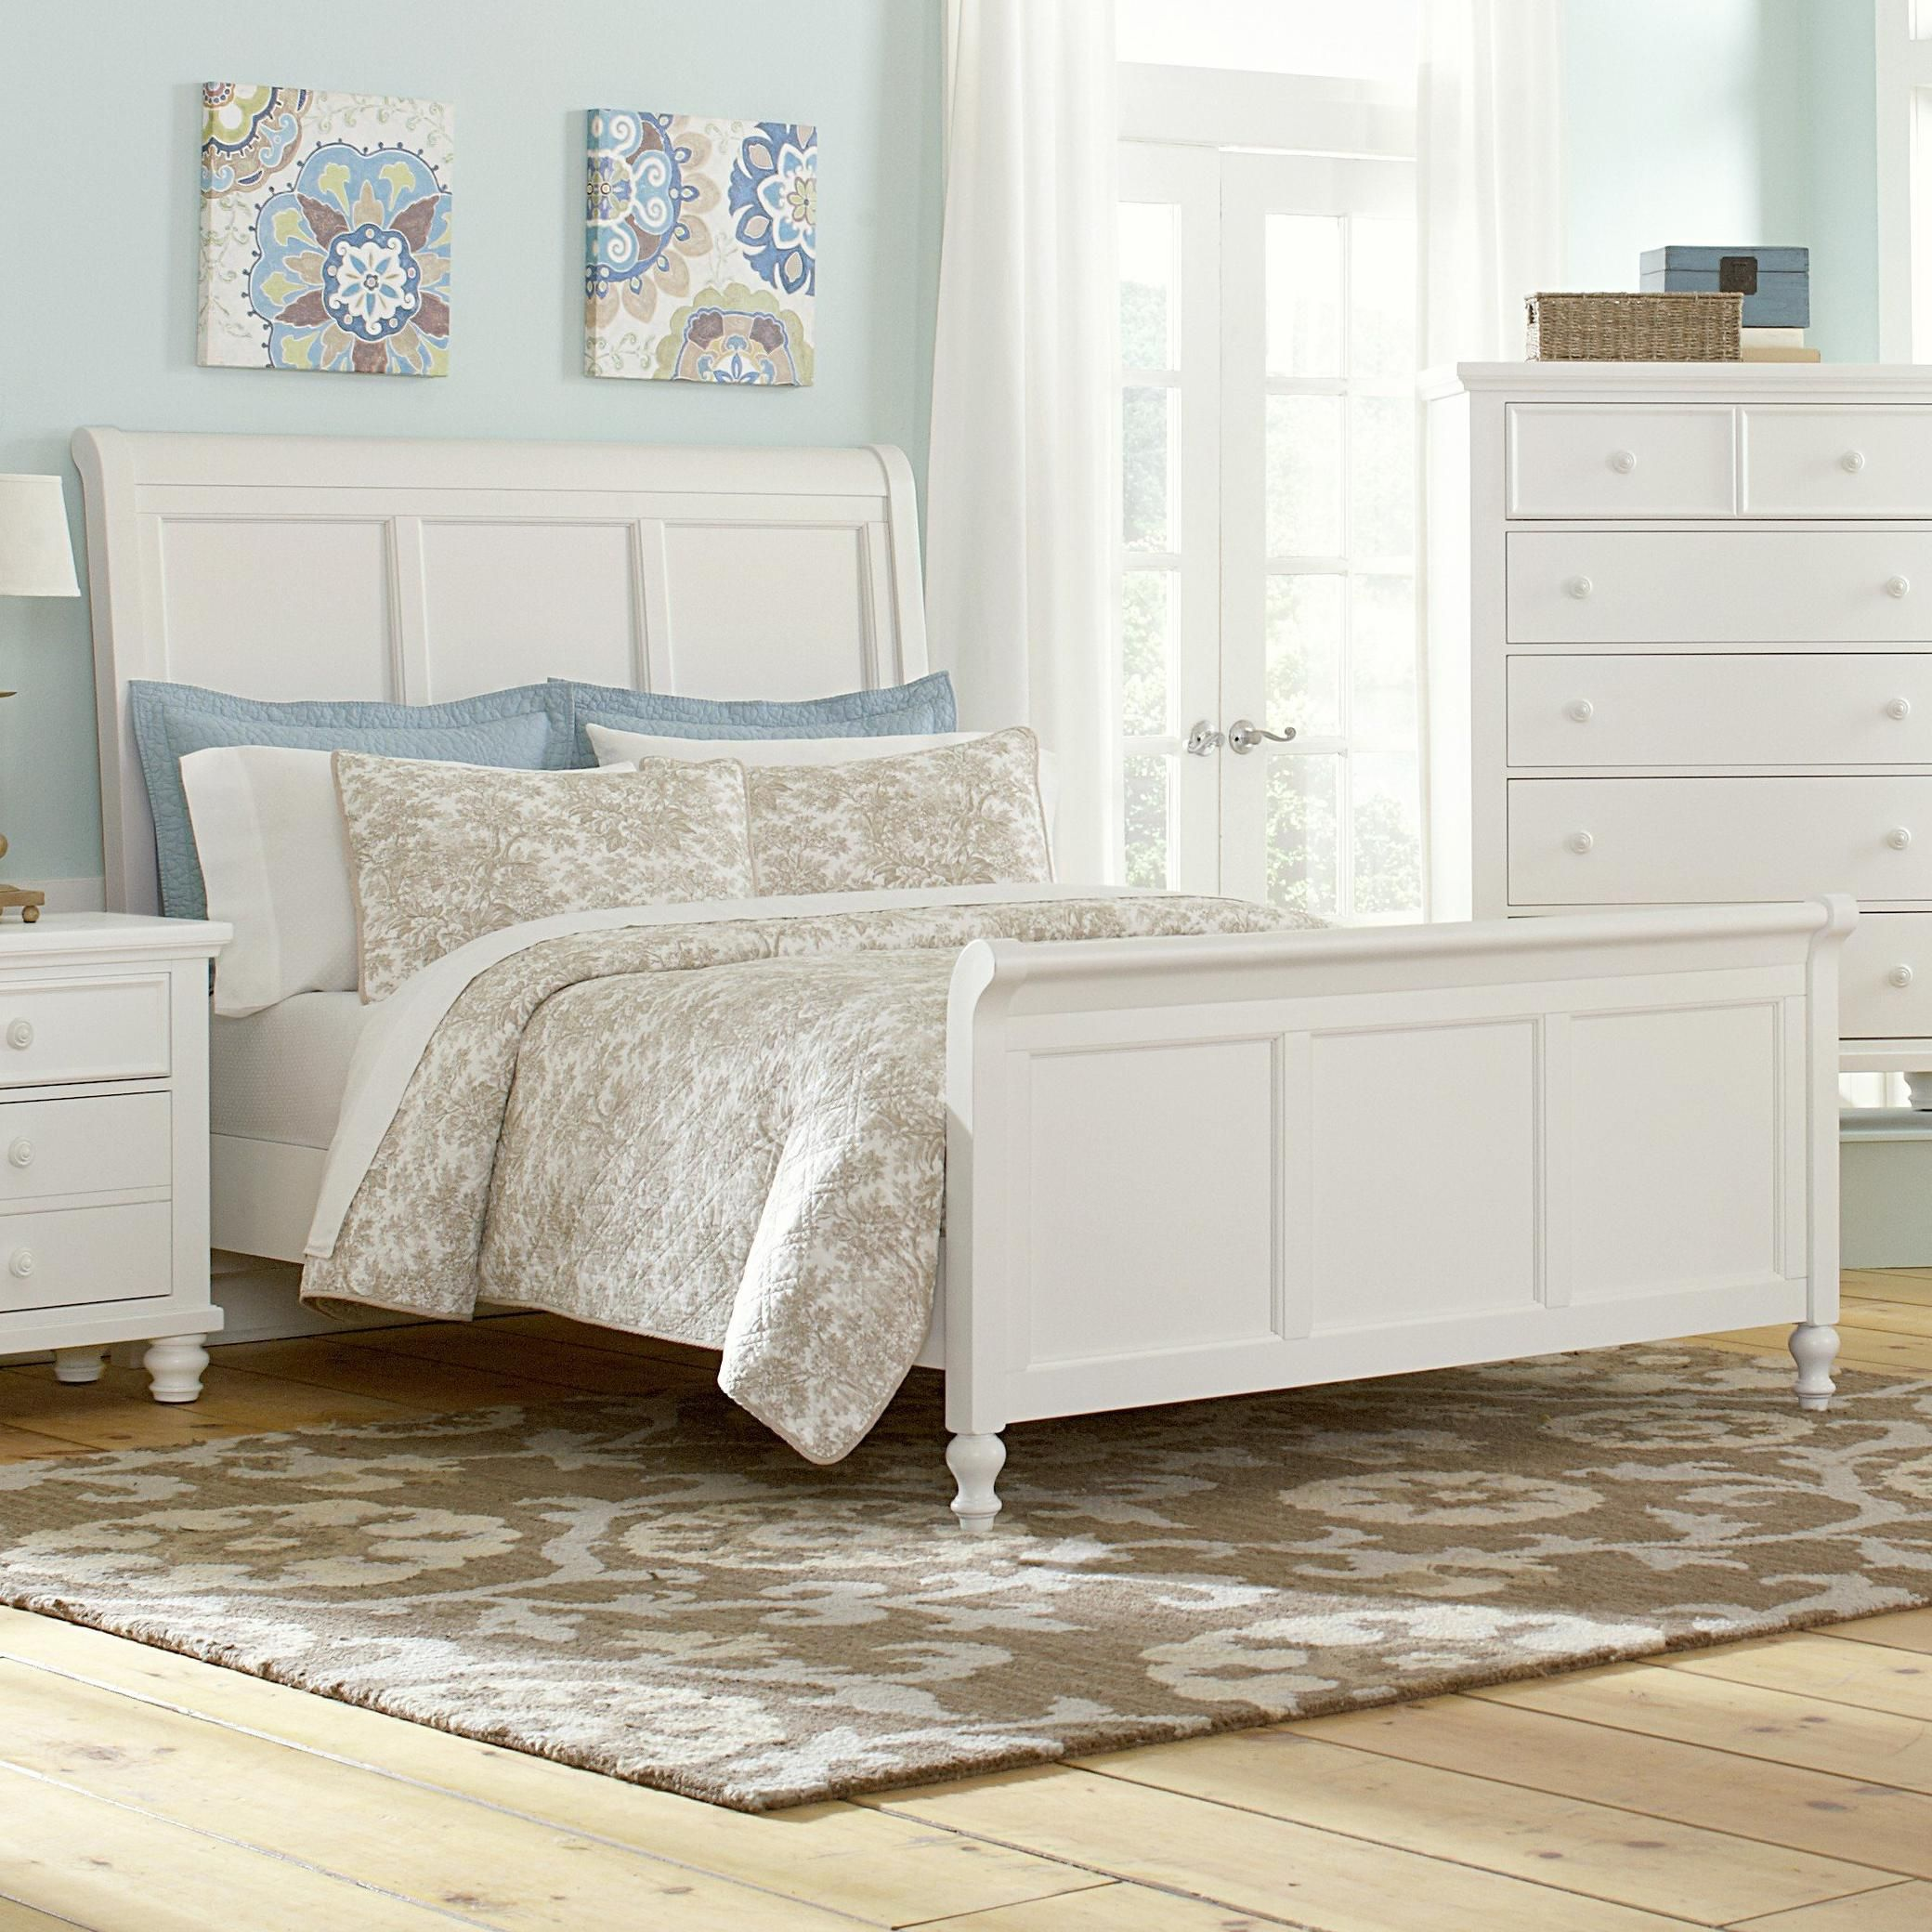 Ellington King Transitional Sleigh Bed By Vaughan Bassett   Riverview  Galleries   Sleigh Bed Furniture Store